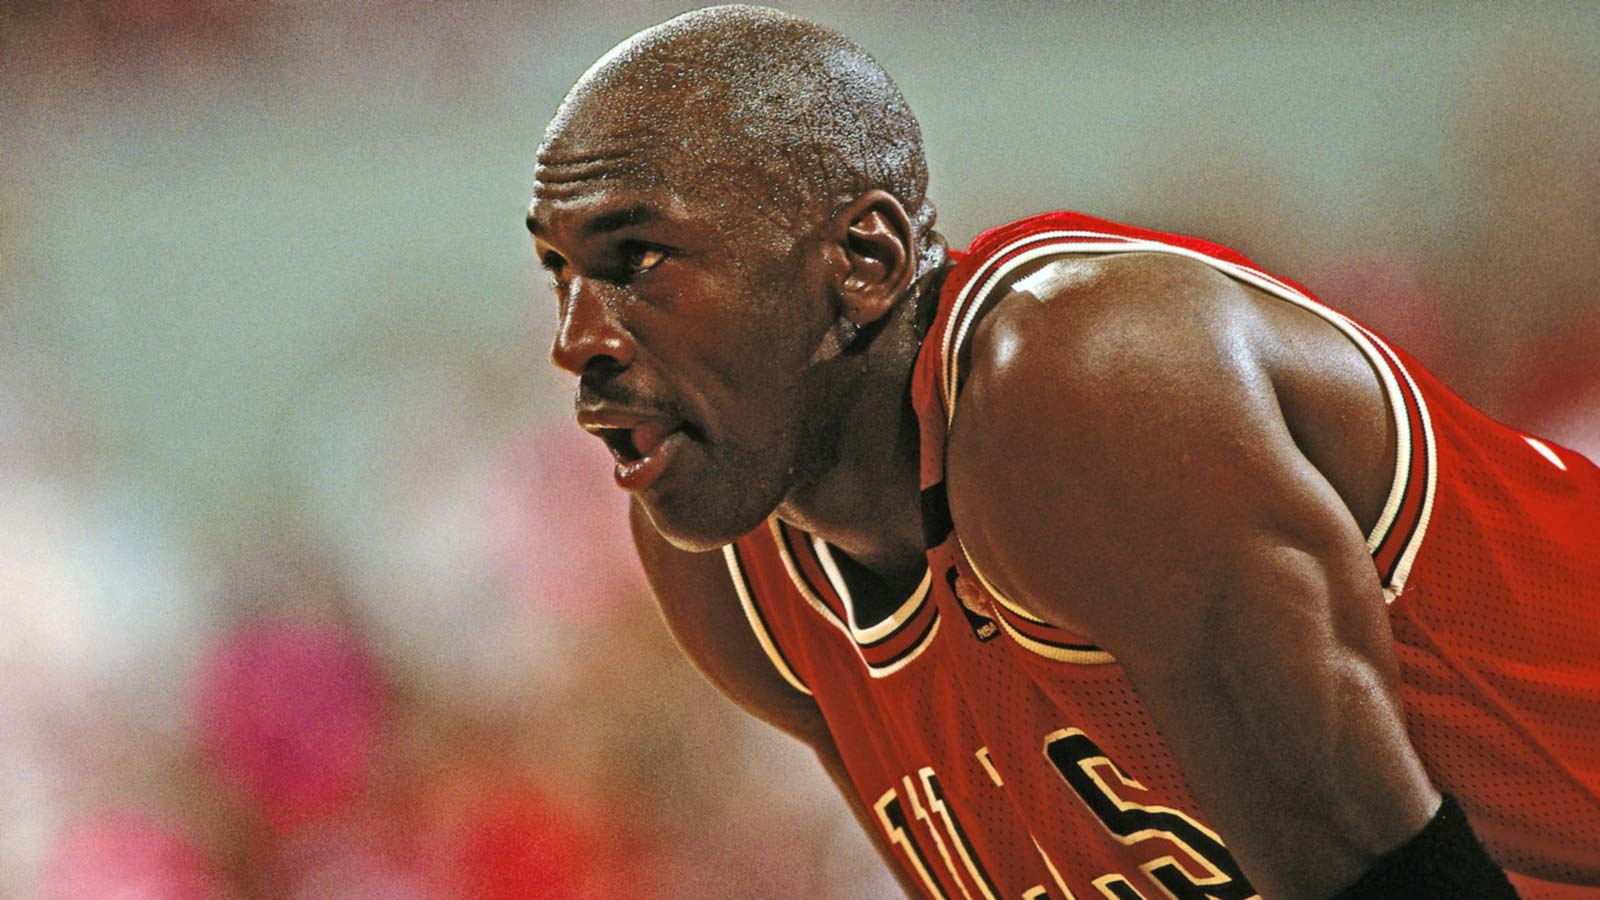 tanto inteligencia Obstinado  The workout Michael Jordan used to WIN 6 NBA championships! - Rushcutters  Health